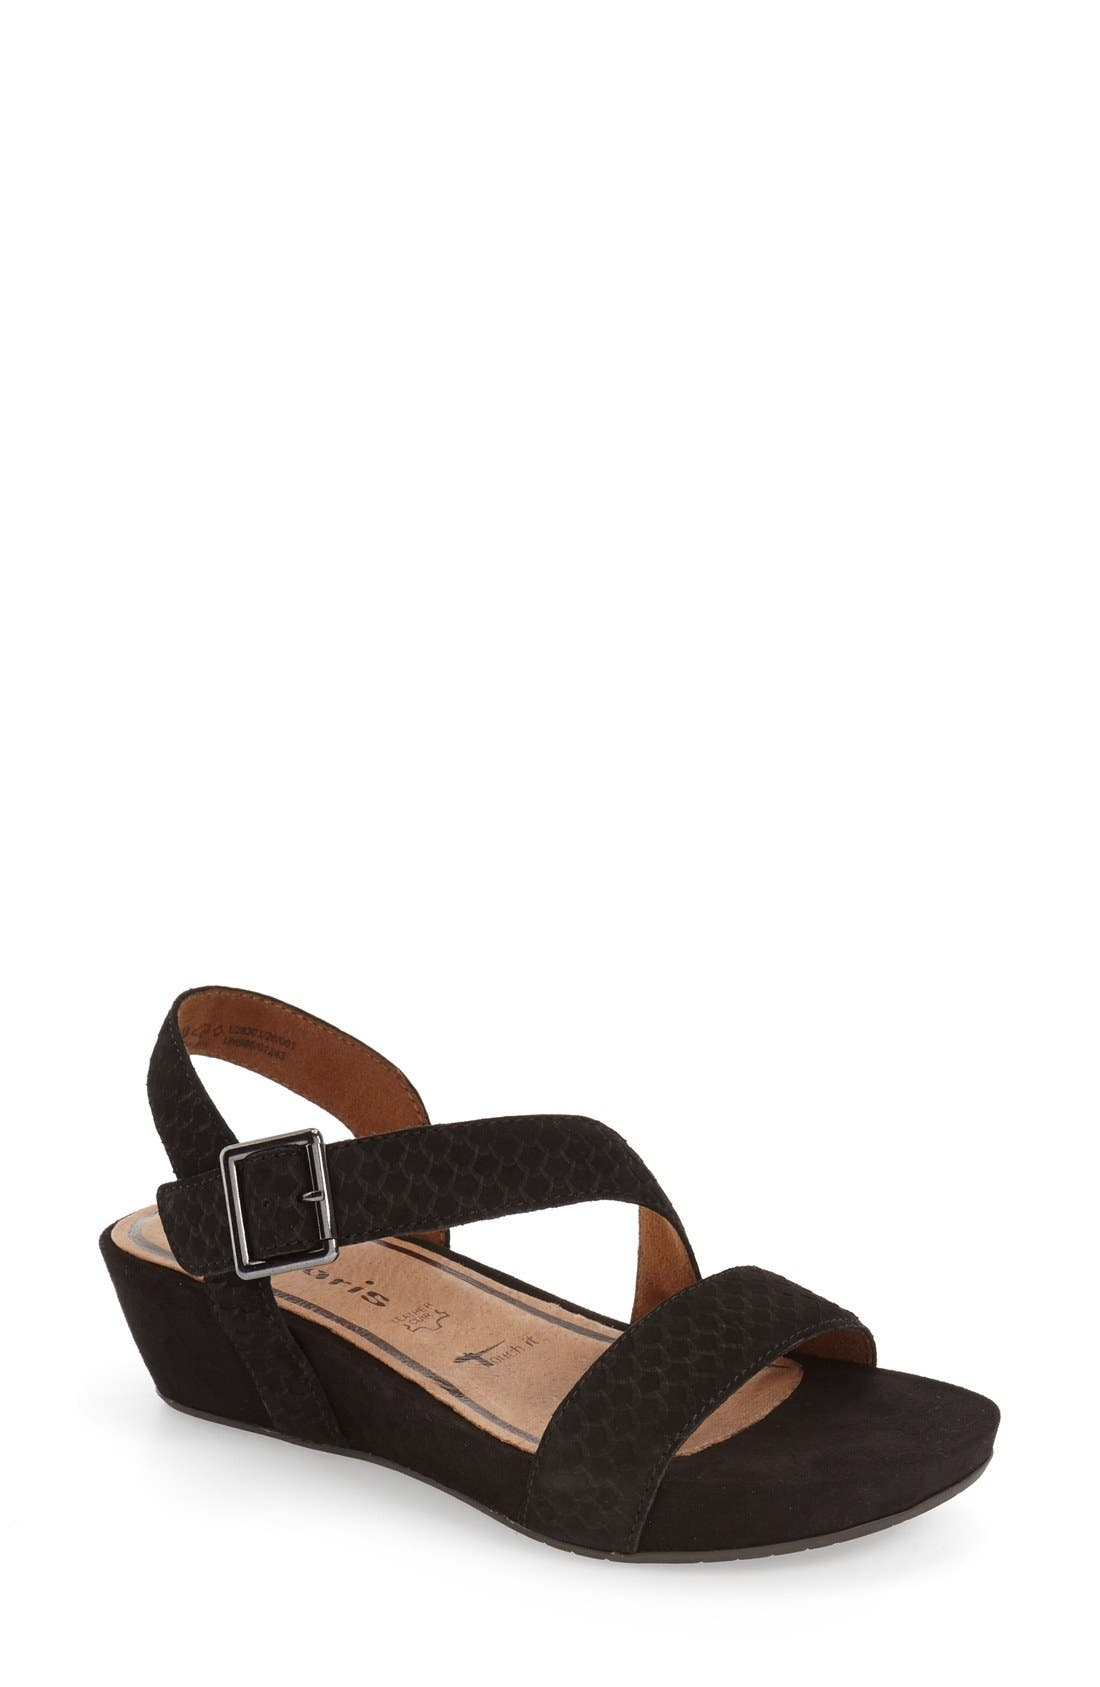 'Eda' Platform Wedge Sandal,                         Main,                         color, 001